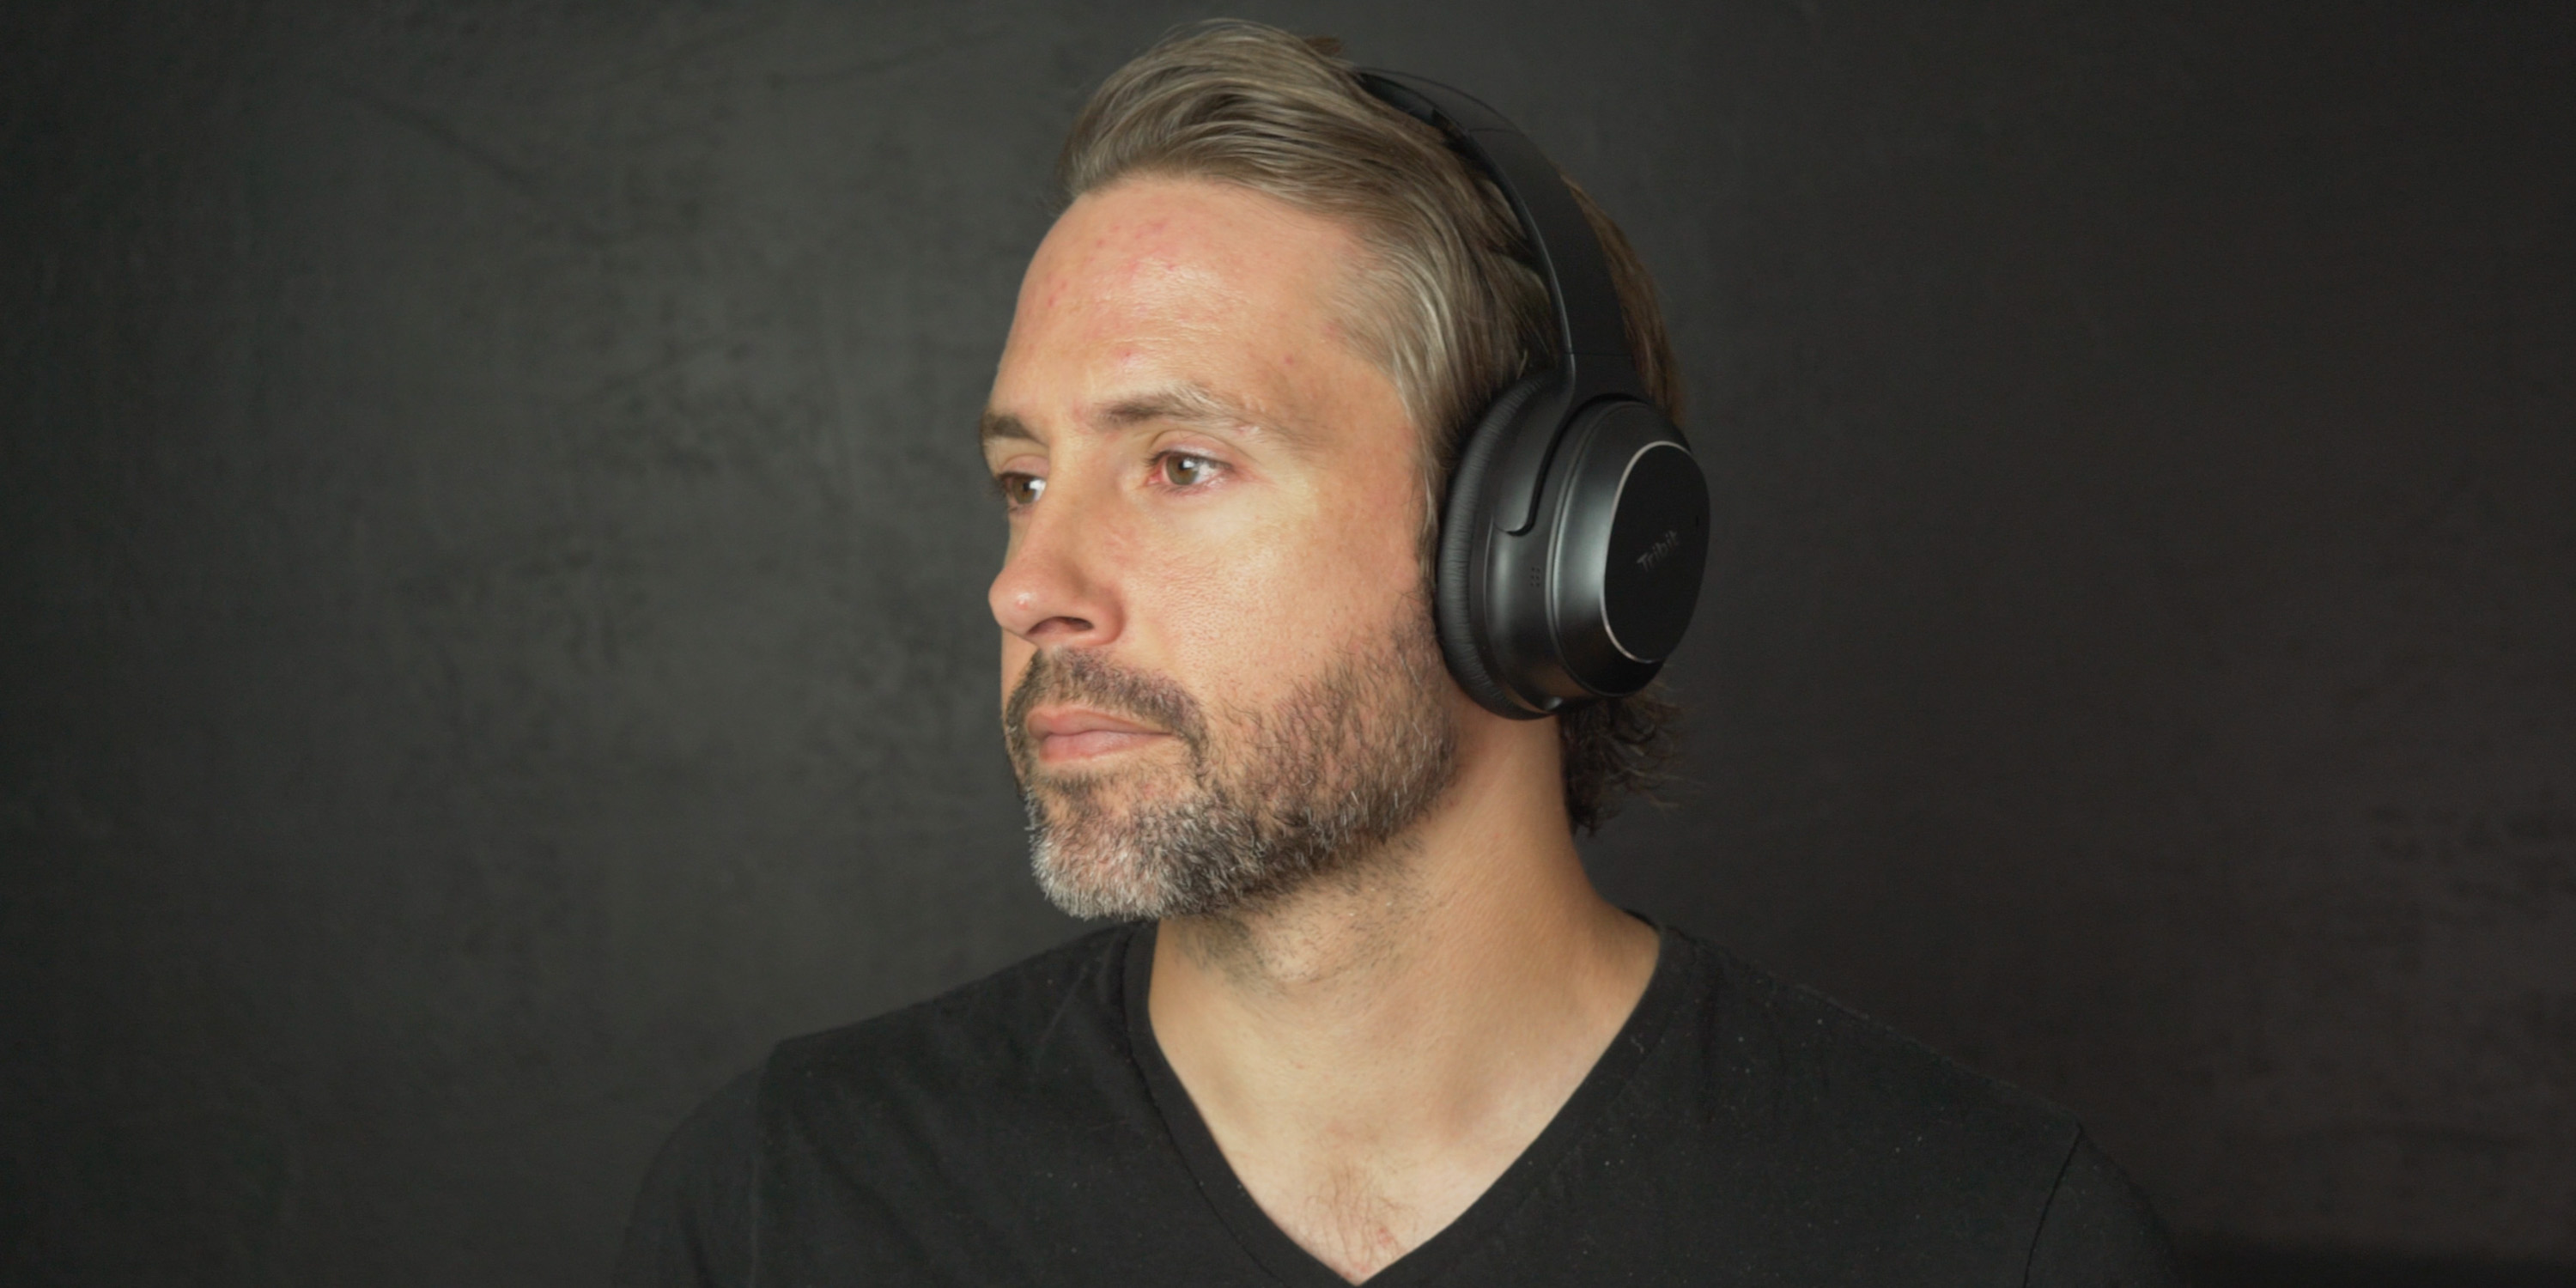 Listening to the Tribit QuietPlus 72 headphones